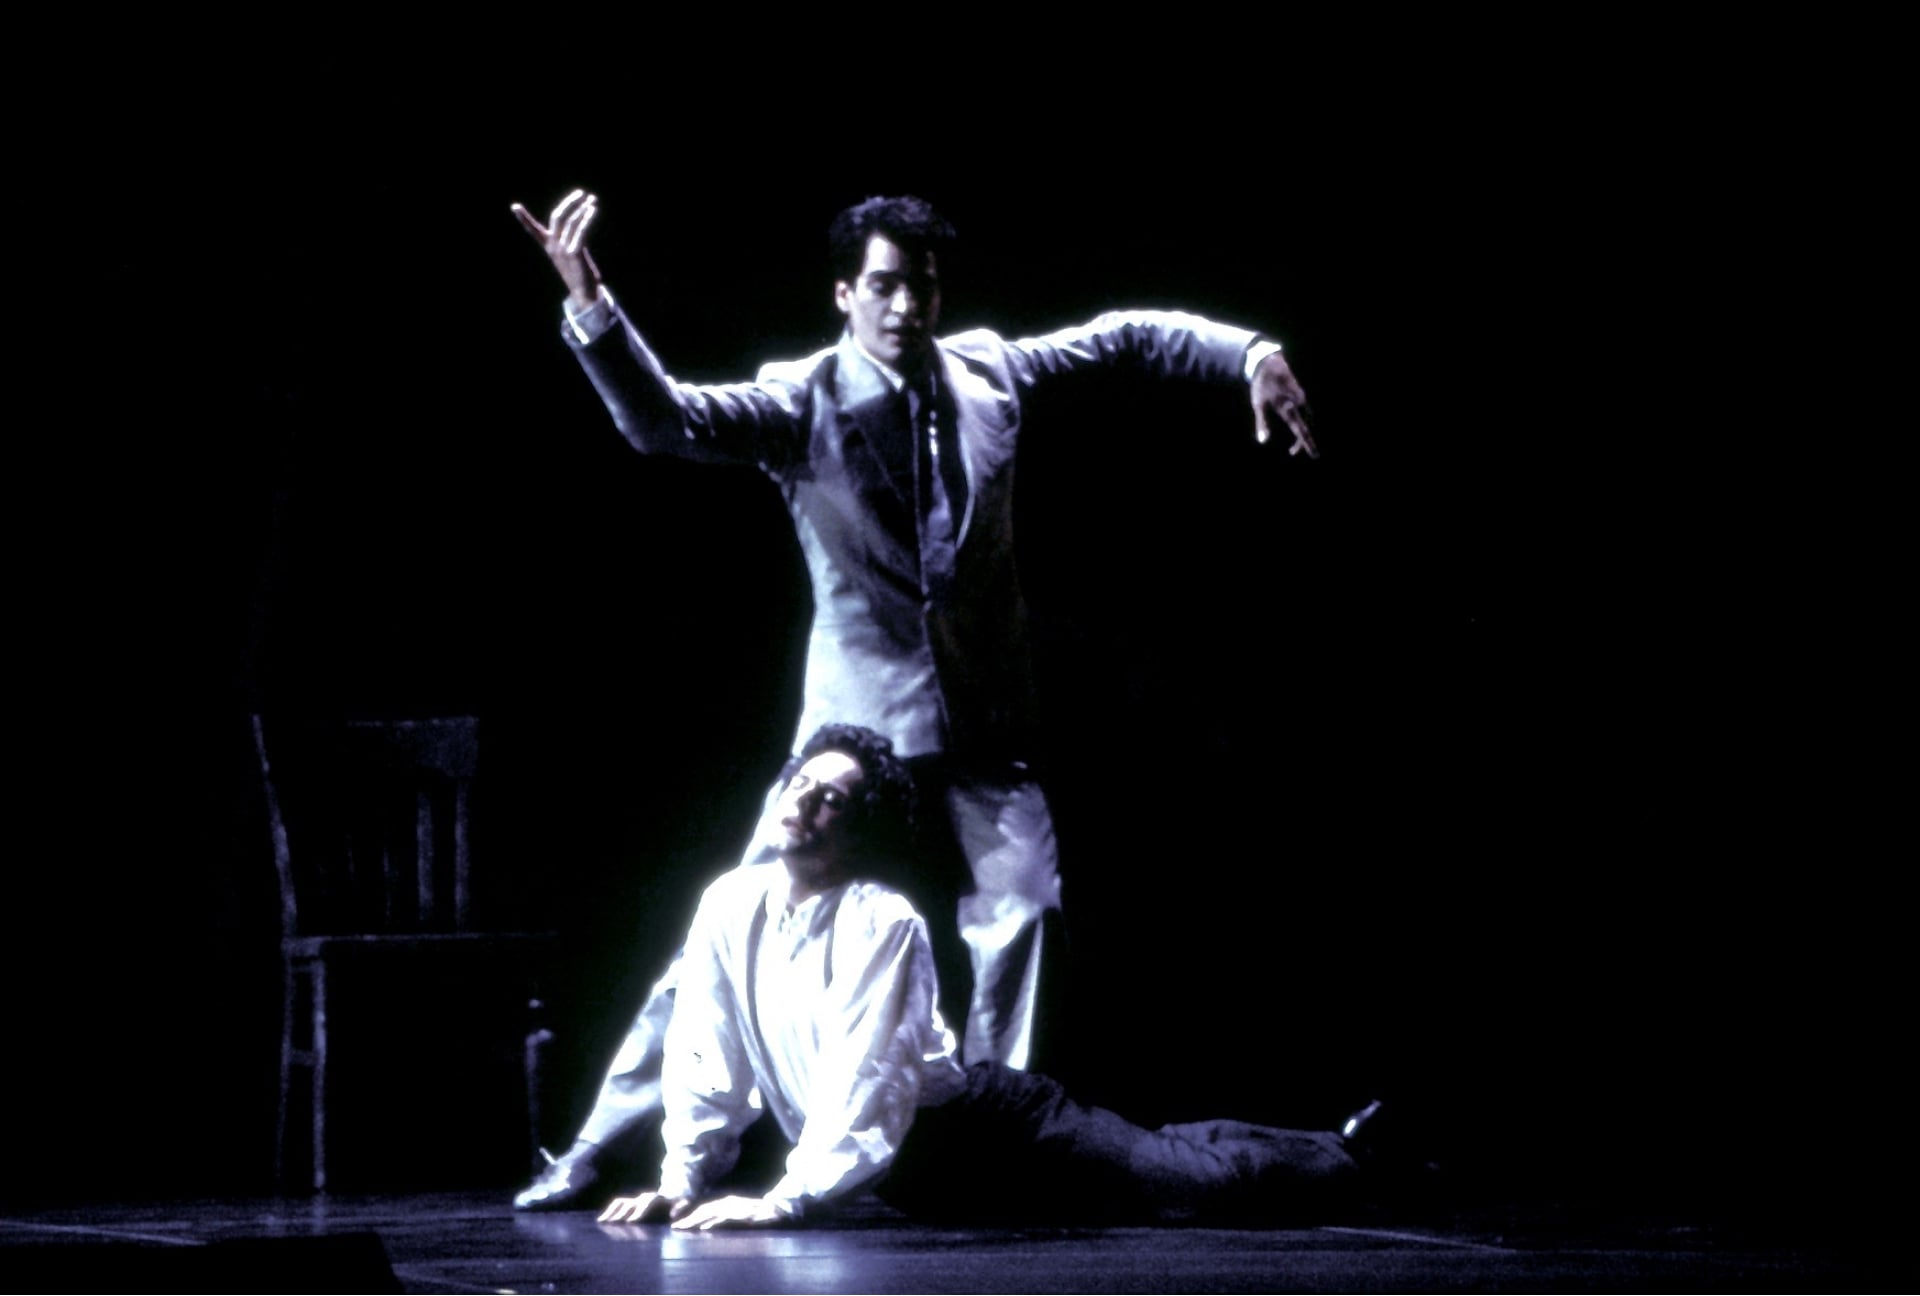 Dancer in white shirt arches at feet of dancer in white suit with arms outstretched.